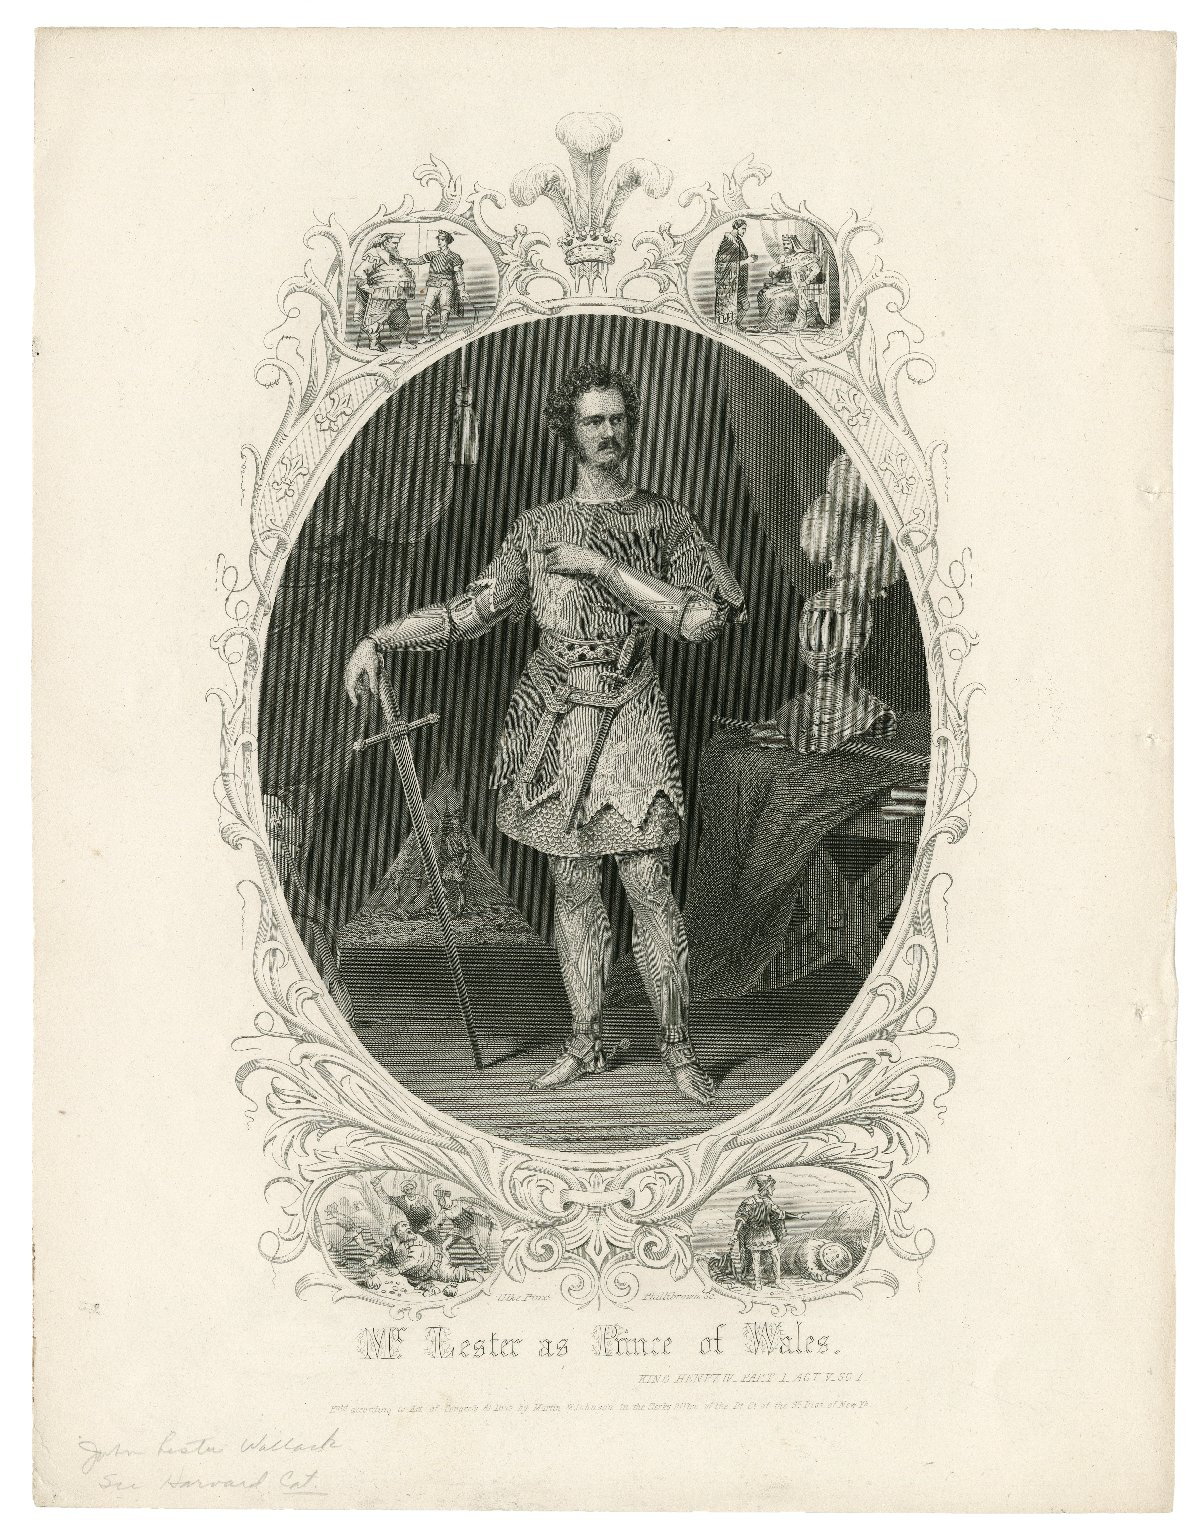 Mr. Lester [Wallack] as Prince of Wales [in Shakespeare's] King Henry IV, part 1, act V, sc. 1 [graphic] / Ulke, pinxt. ; Phillibrown, sc.